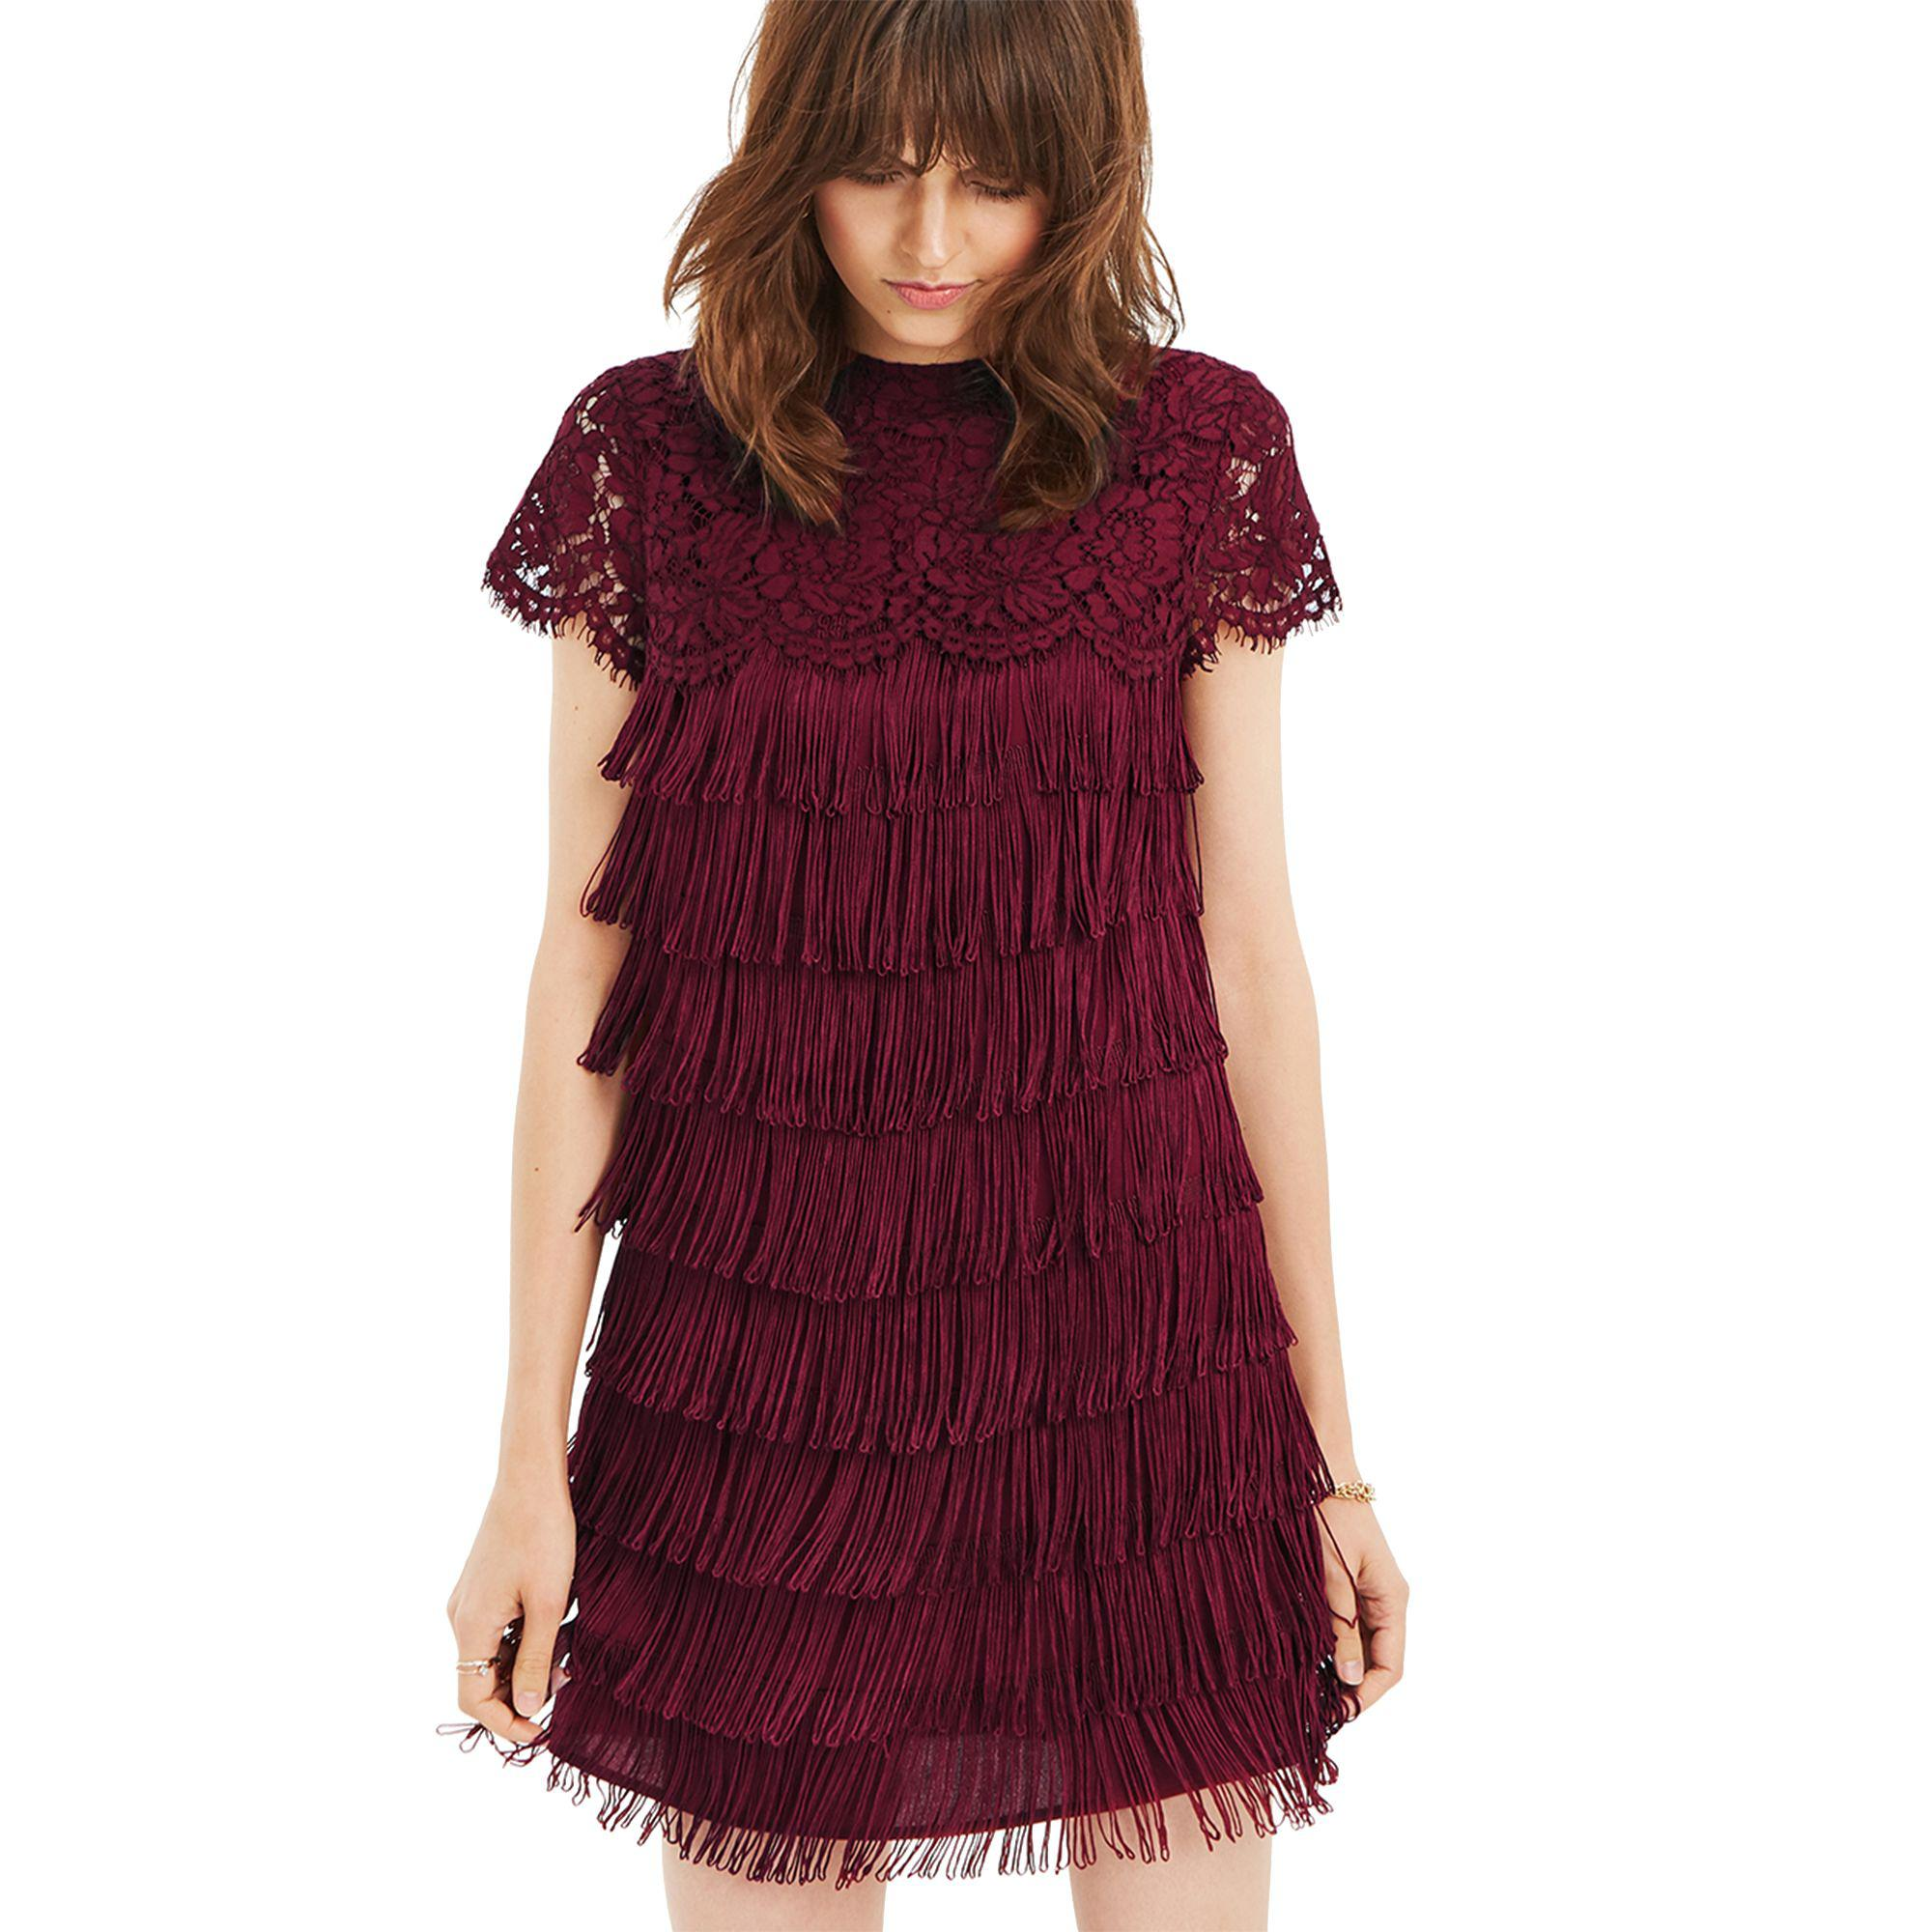 a0509bd51aac Oasis Burgundy Lace And Fringe Shift Dress in Red - Lyst